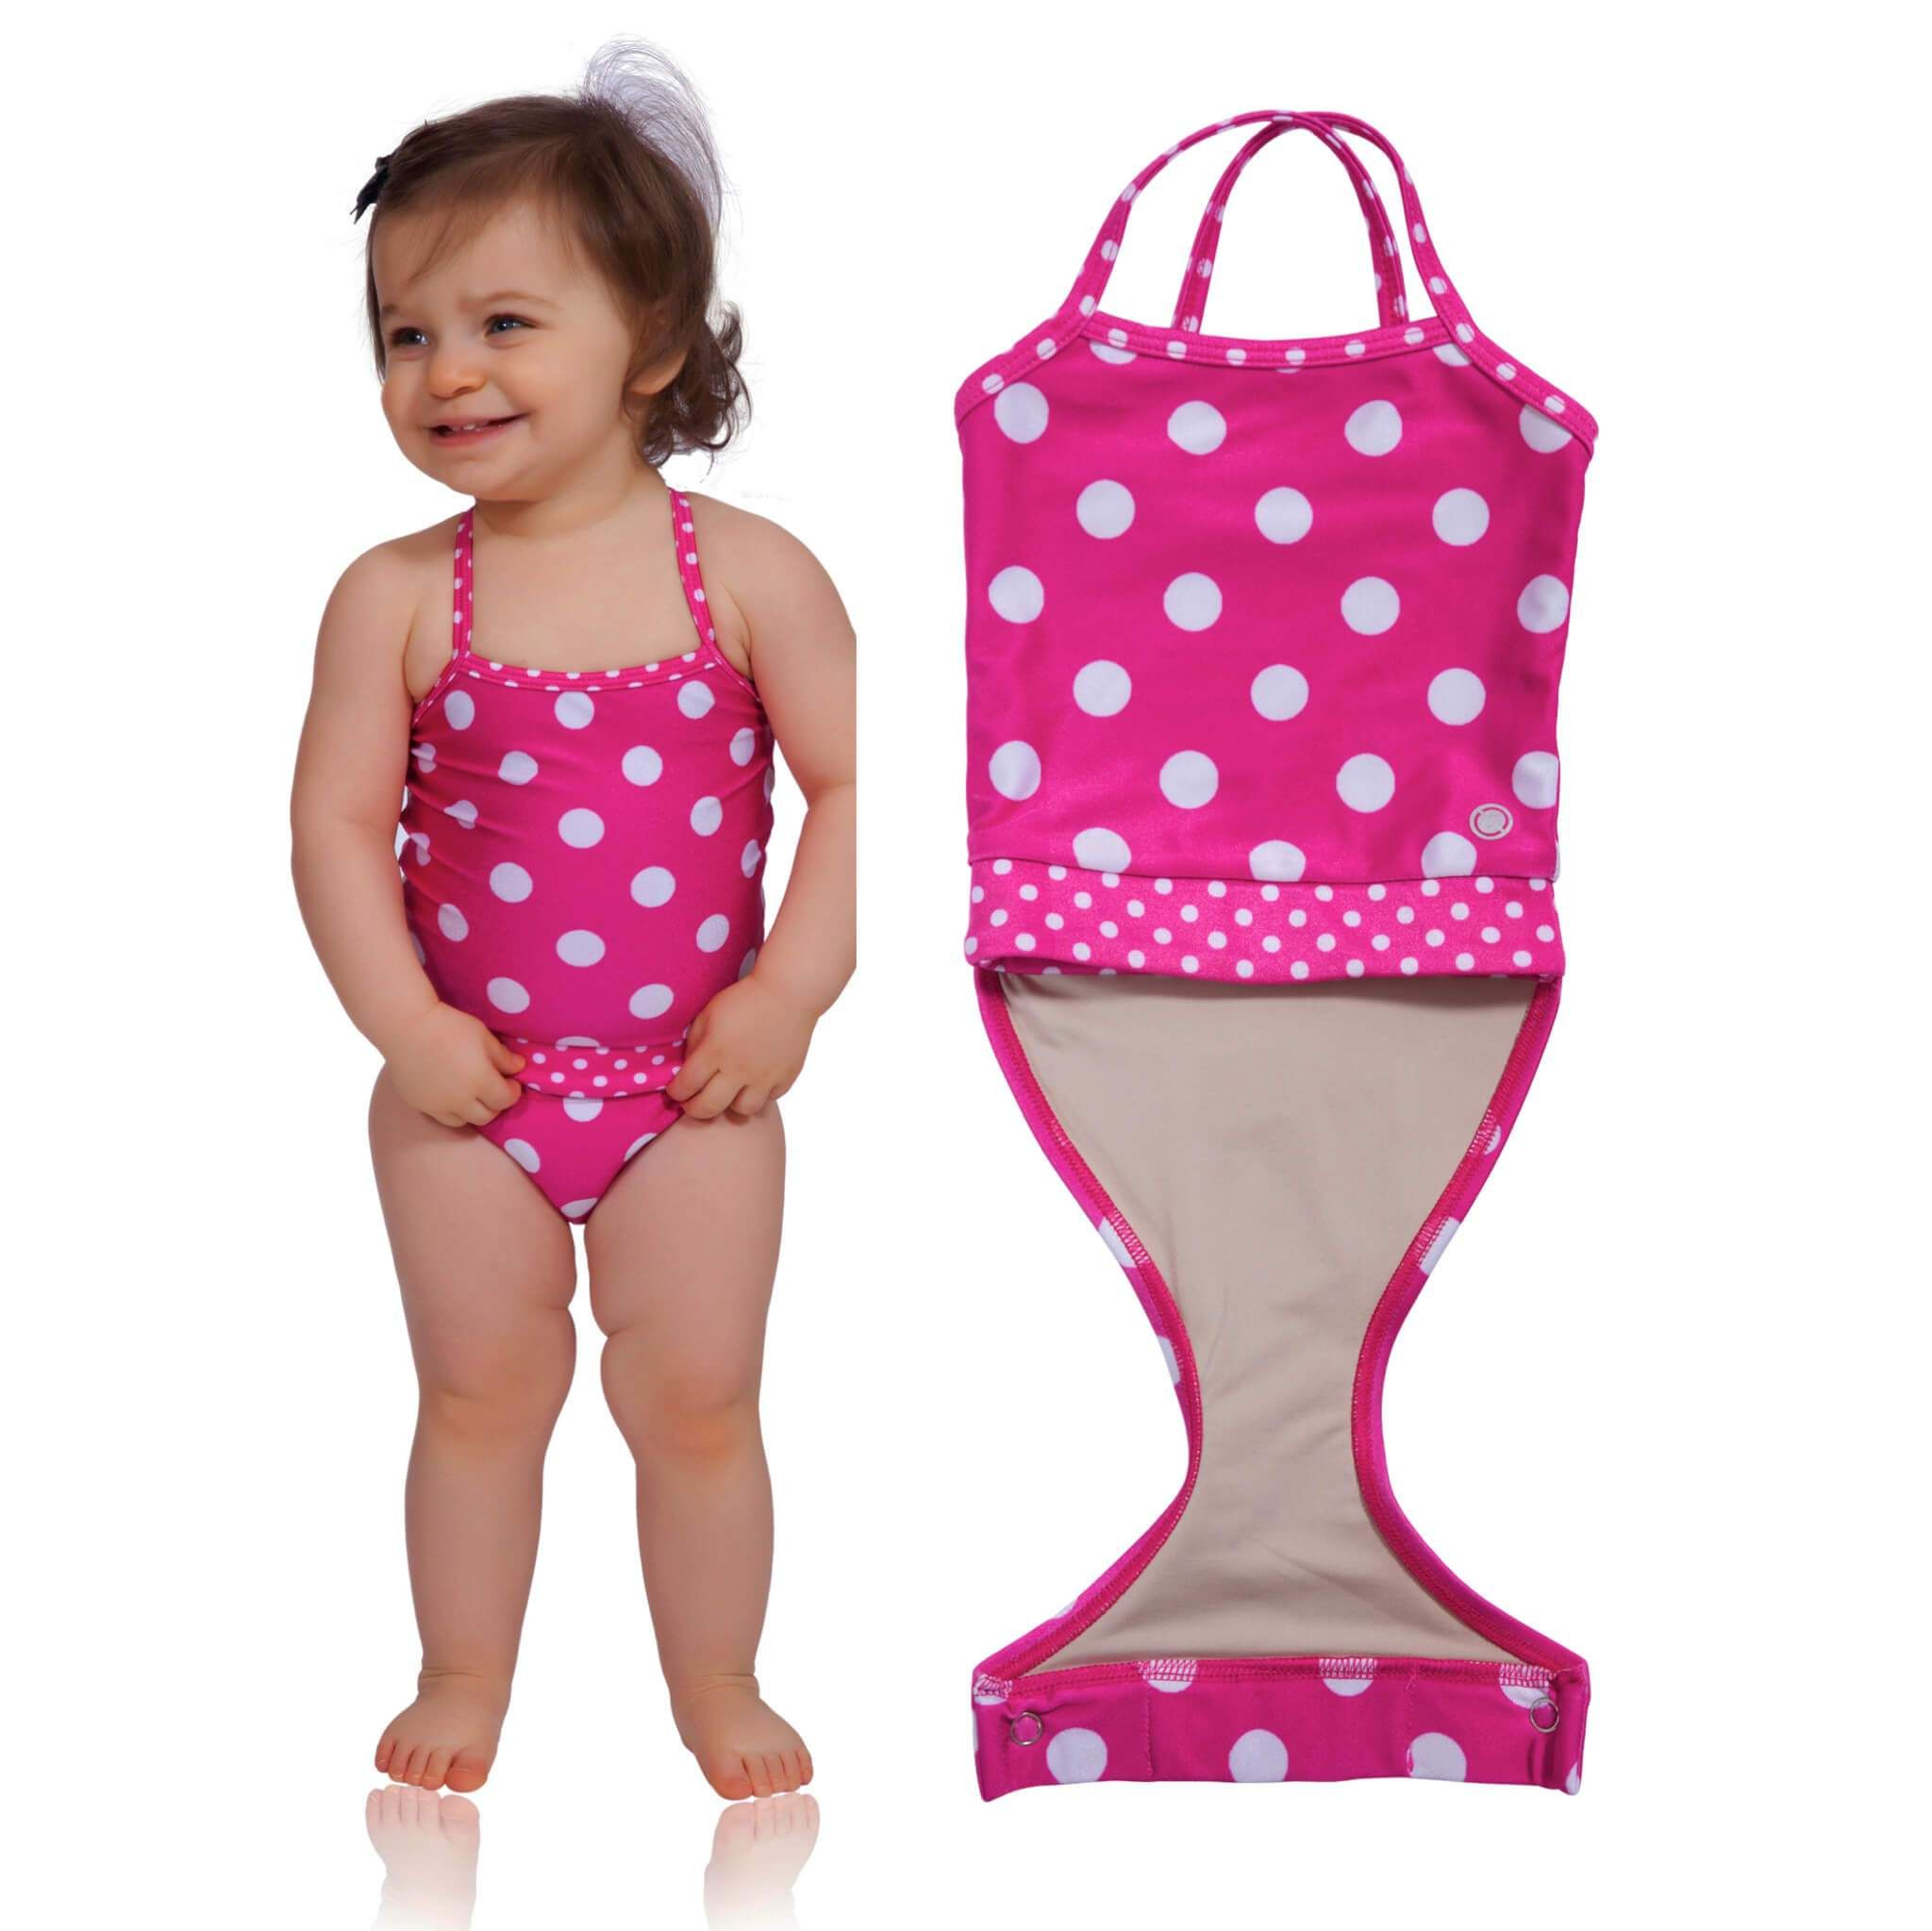 56274eb144 Watermelon Polka Dot baby girl swimsuit by FASTEN. Features patented design  that opens at the